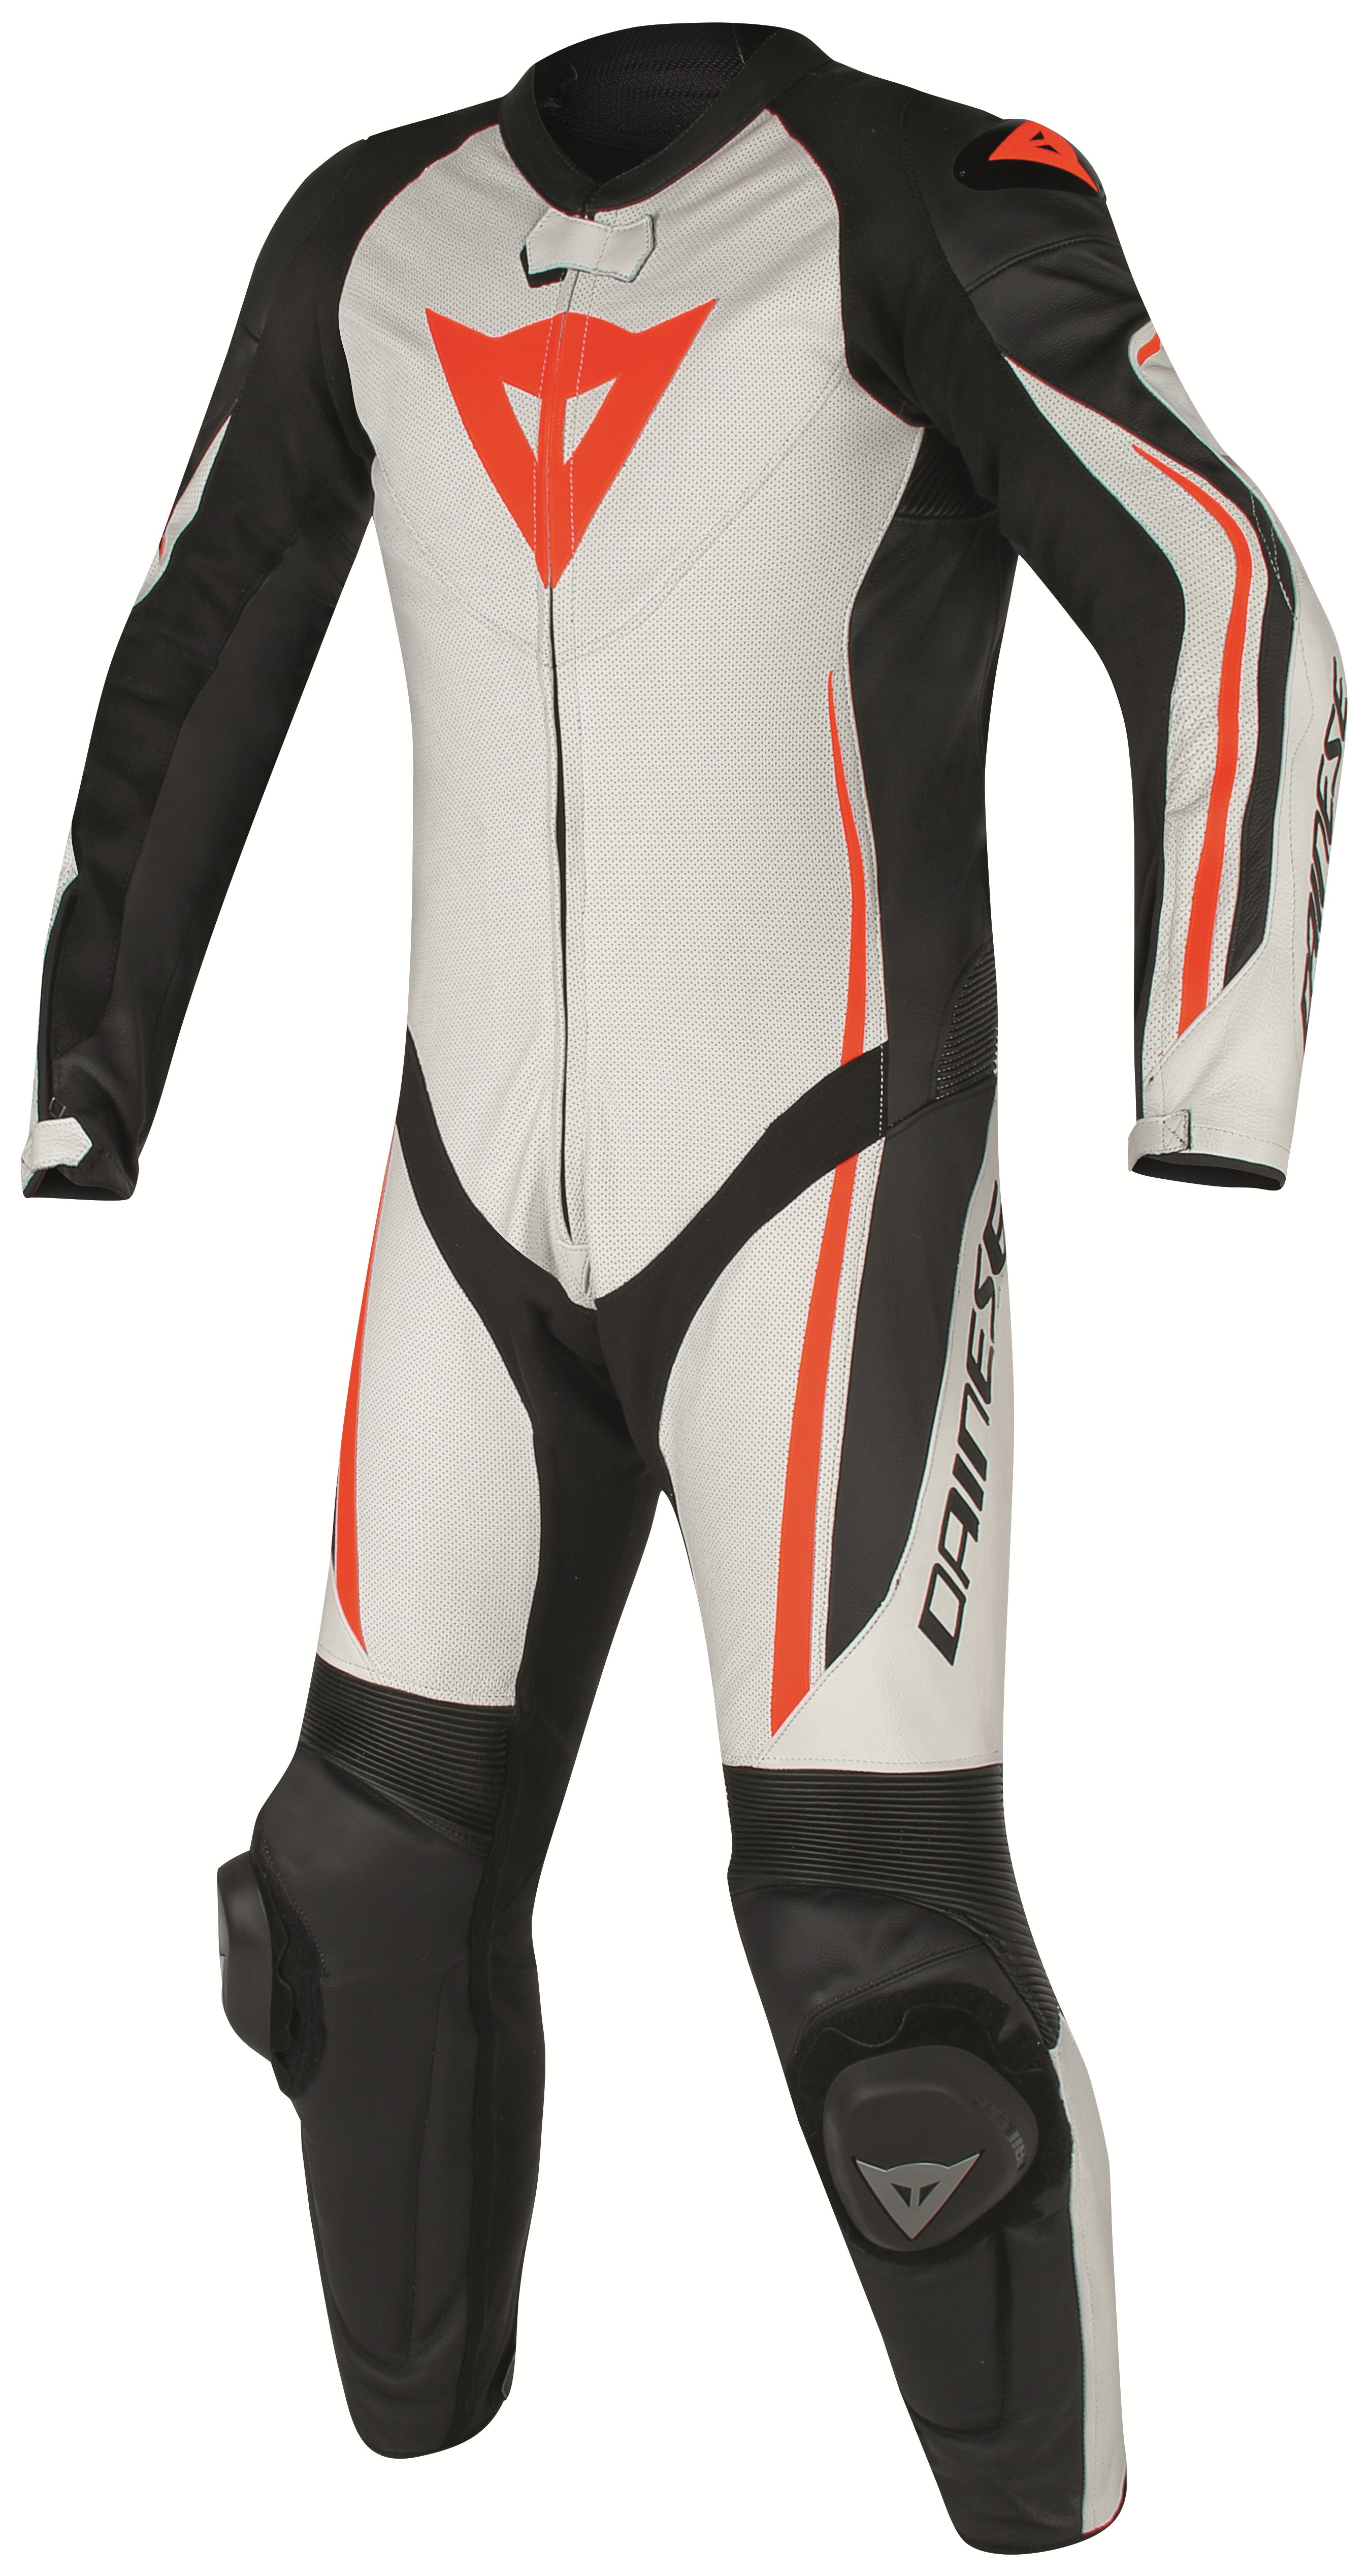 Dainese Gear Motorcycle Jackets Gloves Boots Race